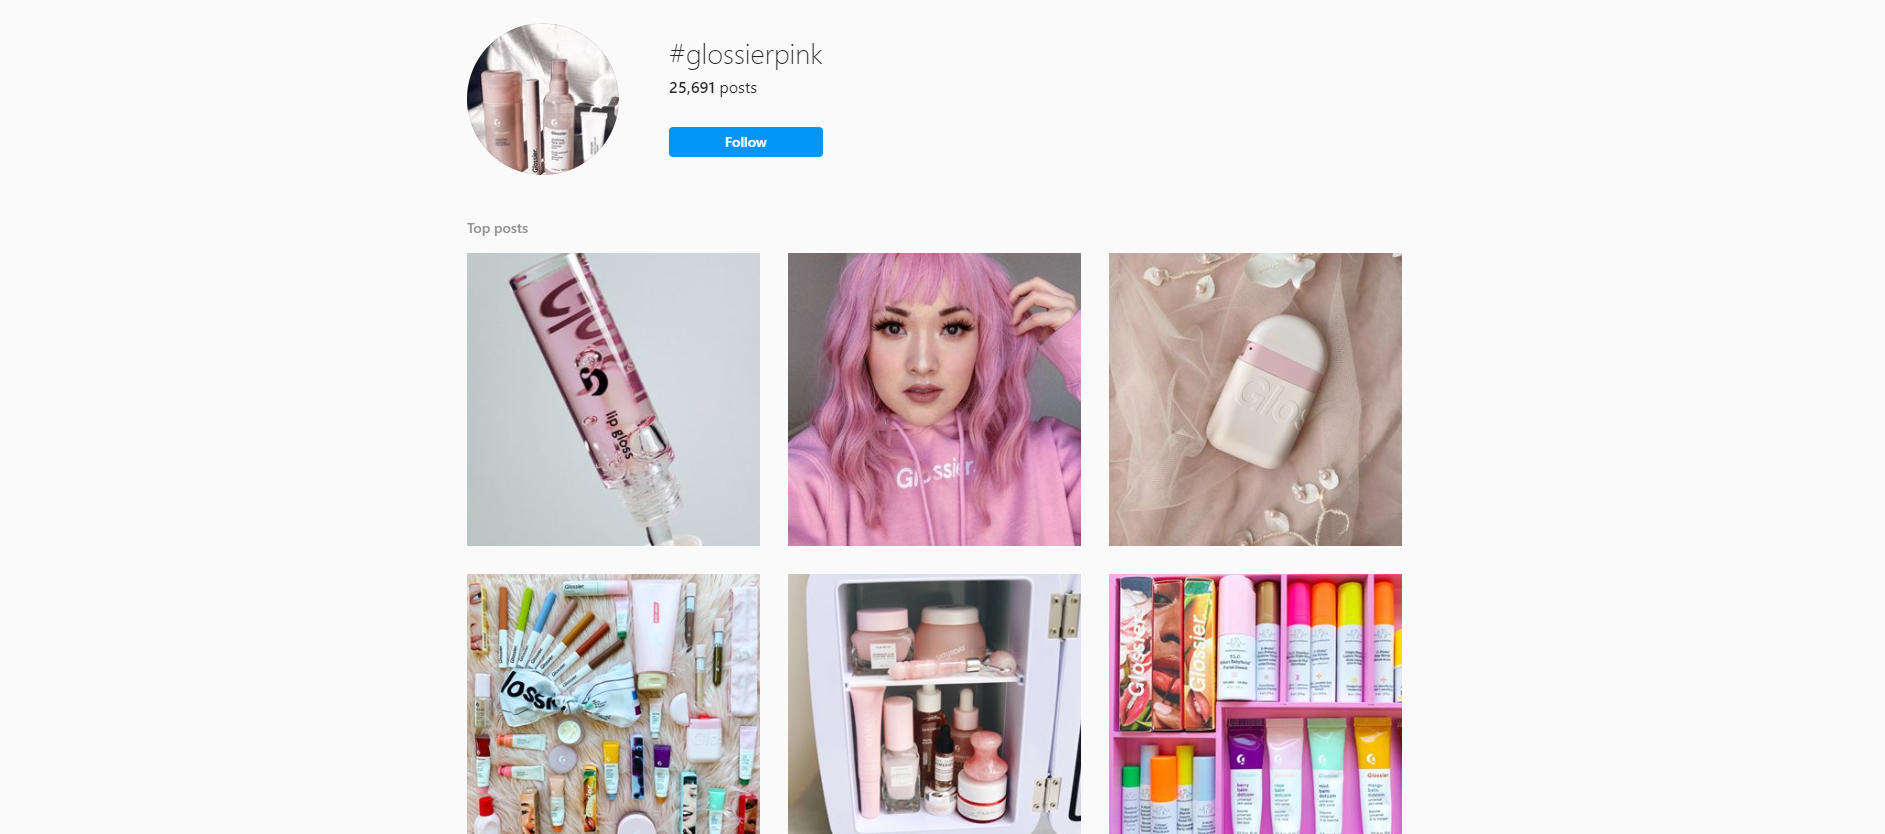 Glossier commerce example